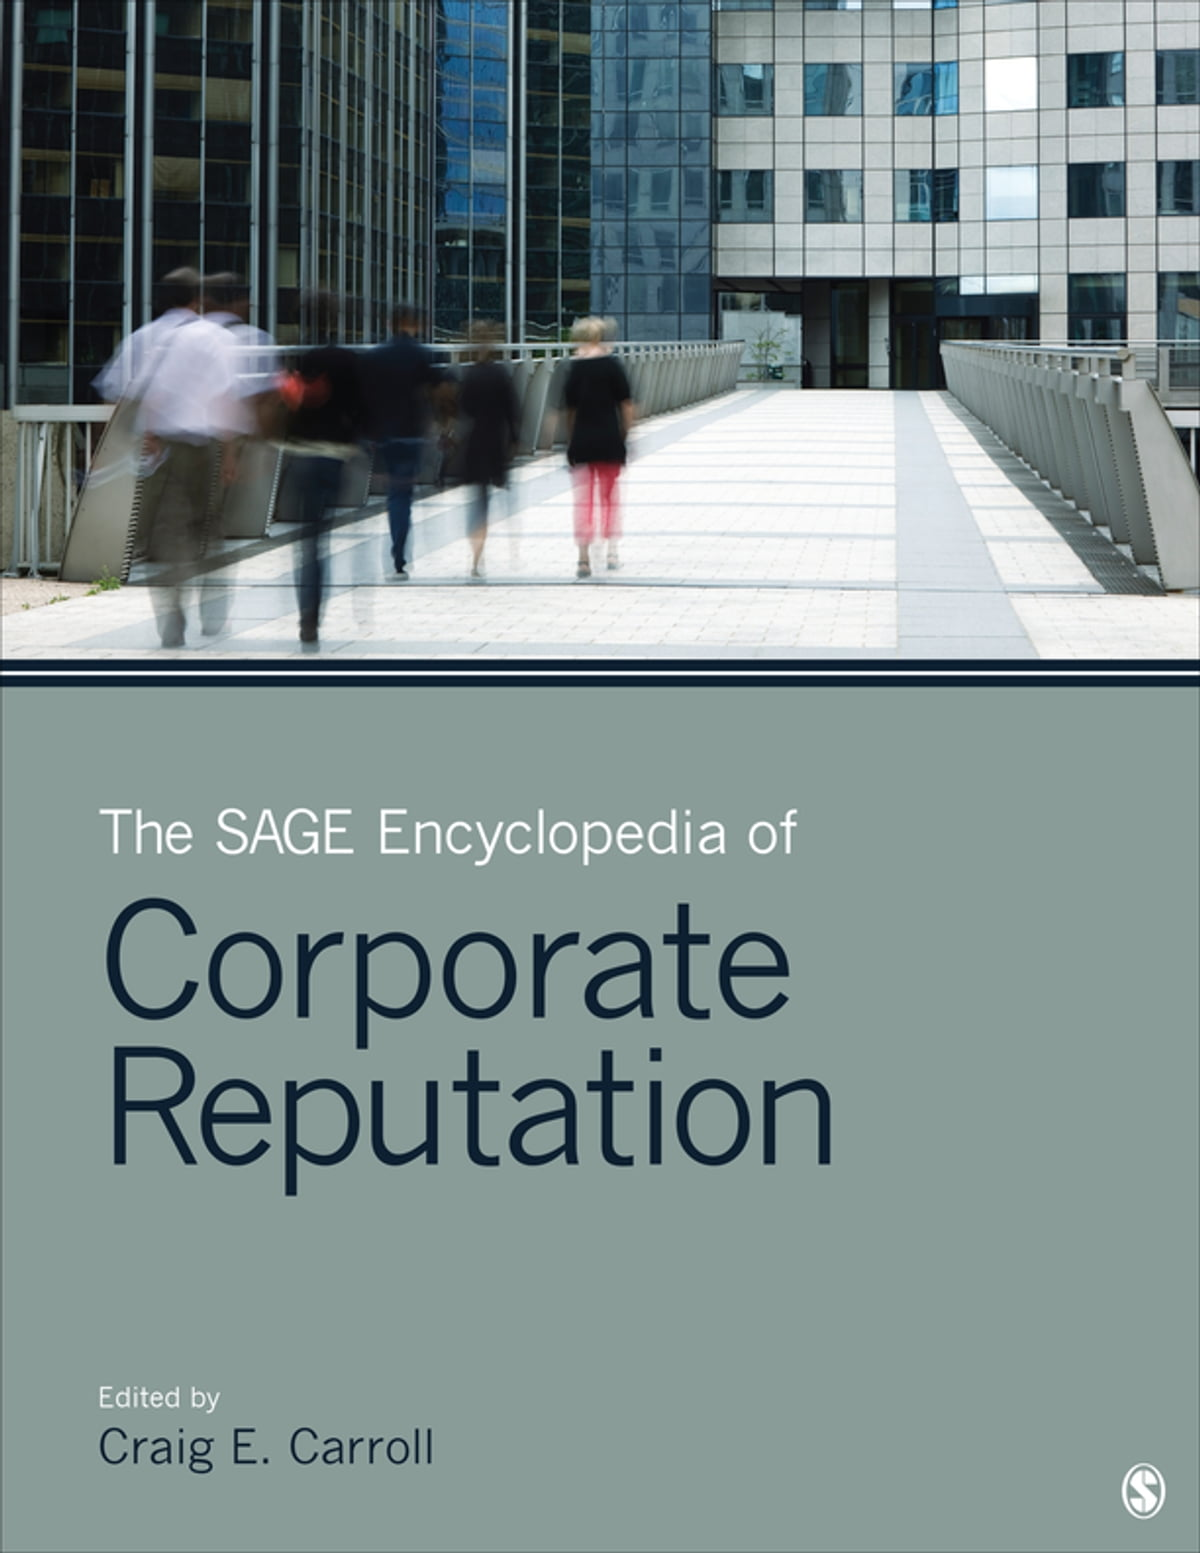 the sage encyclopedia of corporate reputation ebook by the sage encyclopedia of corporate reputation ebook by 9781483376530 kobo